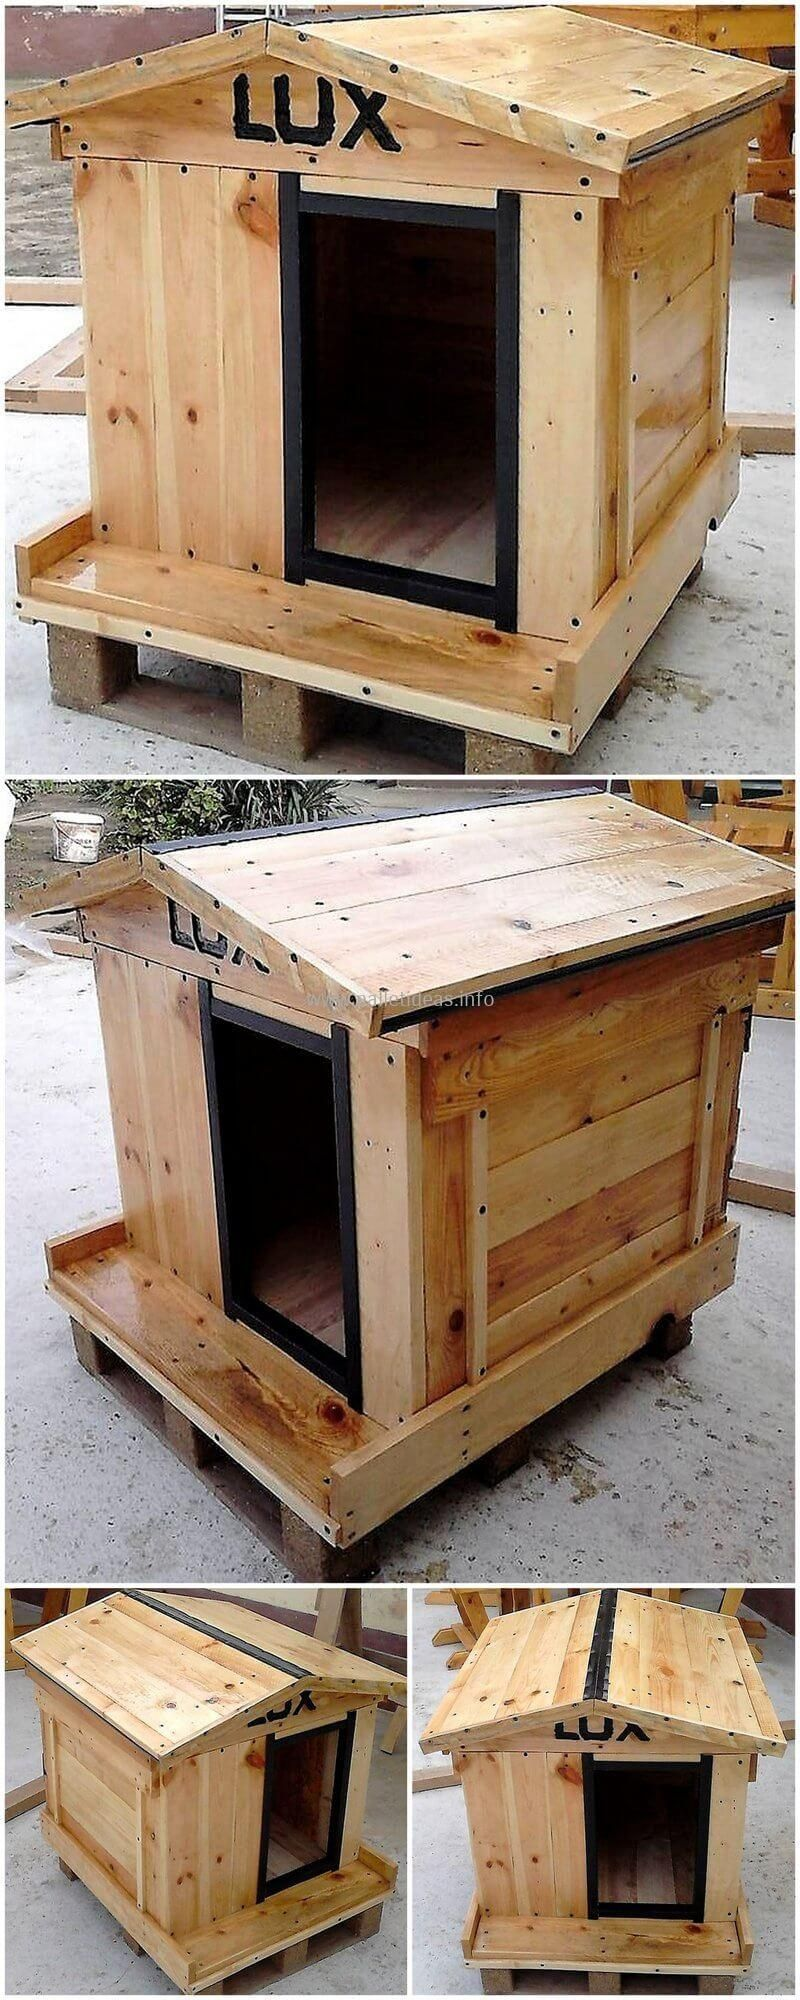 How Can We Reuse Wasted Wood Pallets   Pallet dog house, Dog house ...